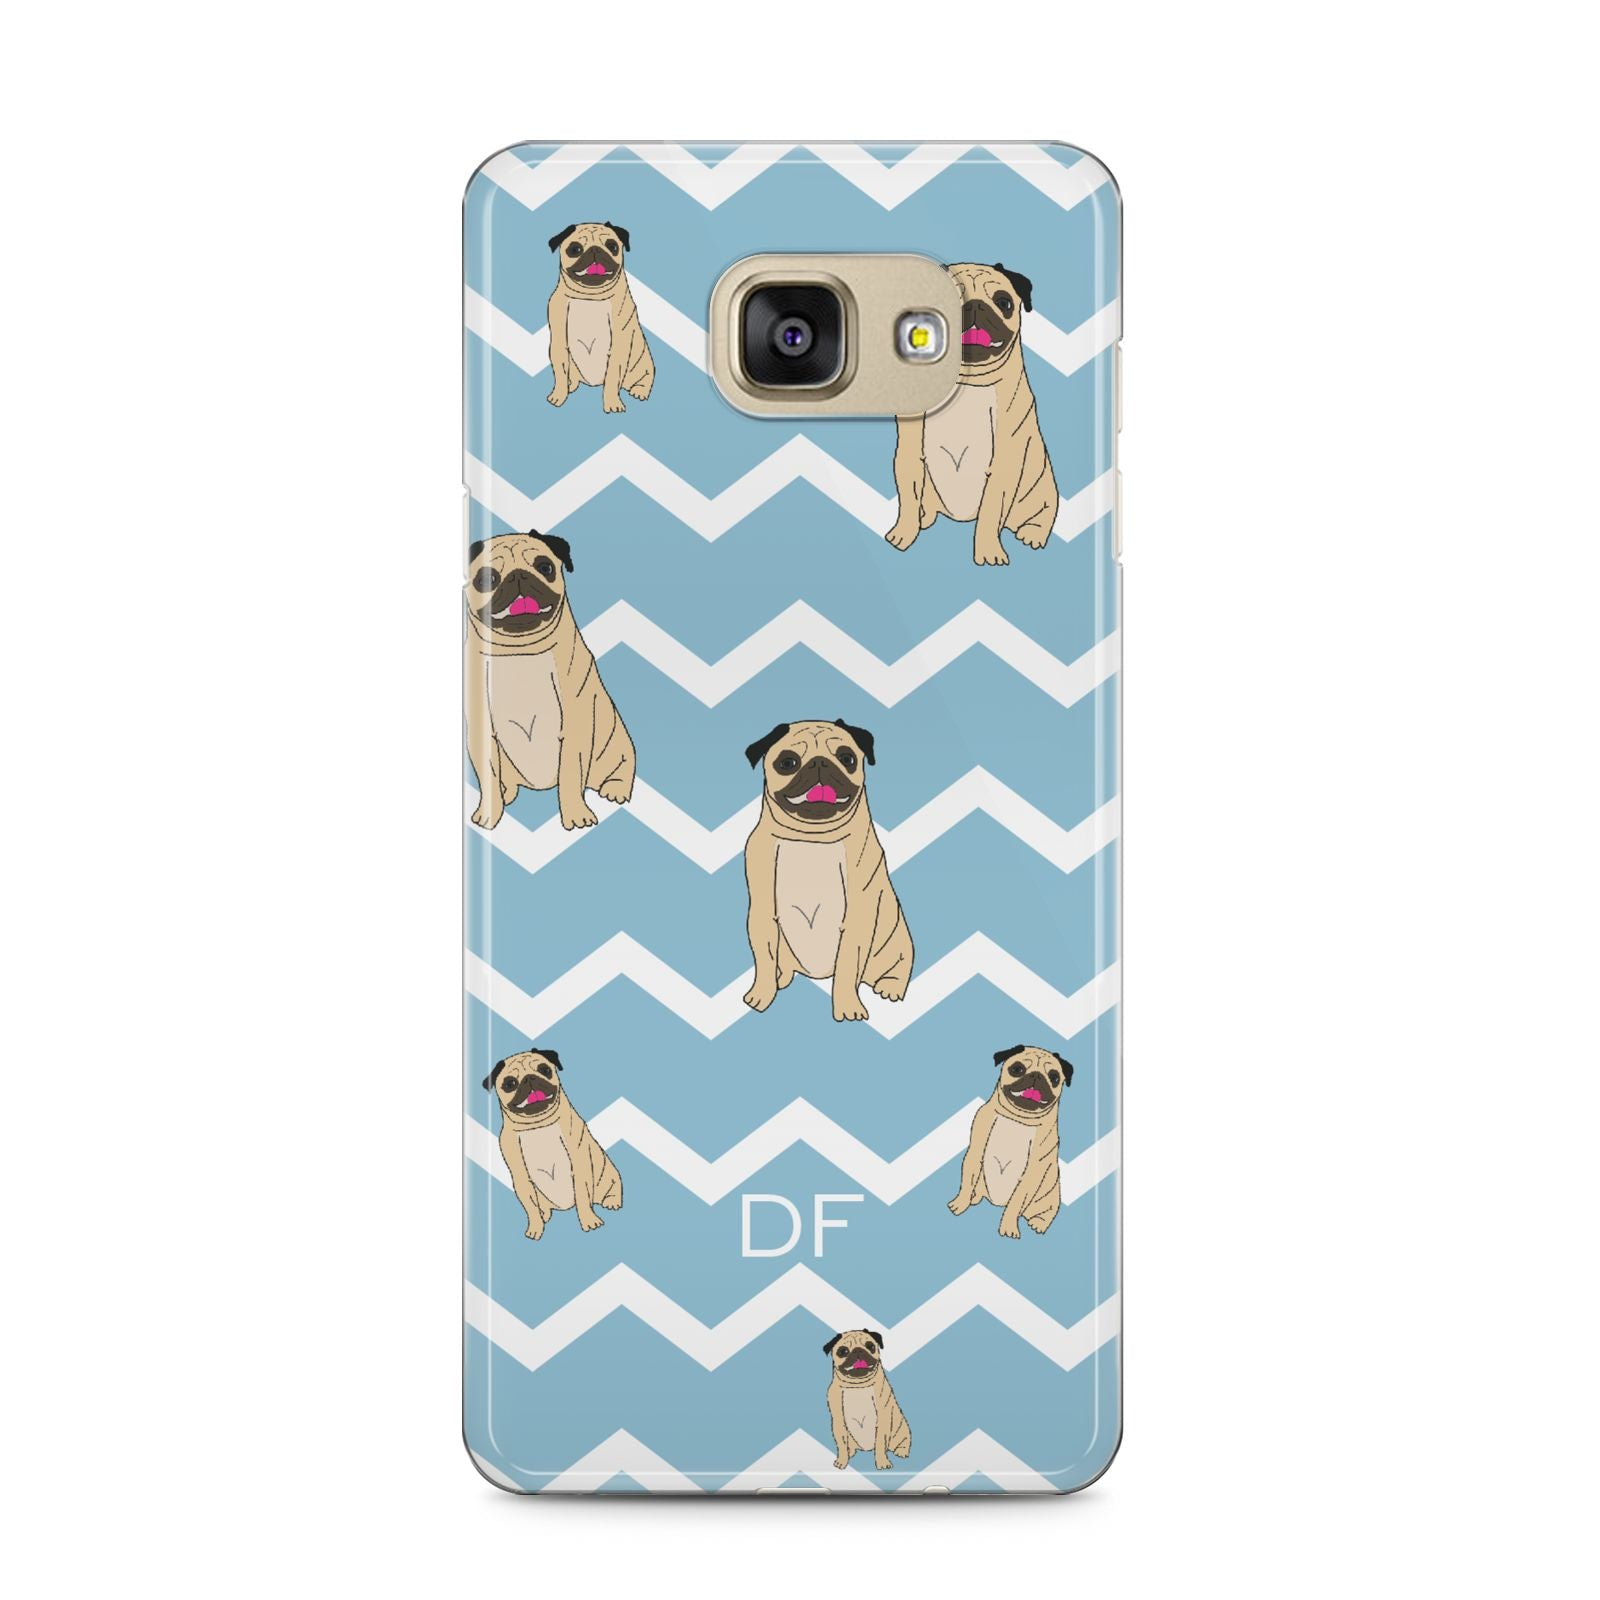 Personalised Pug Initials Samsung Galaxy A5 2016 Case on gold phone